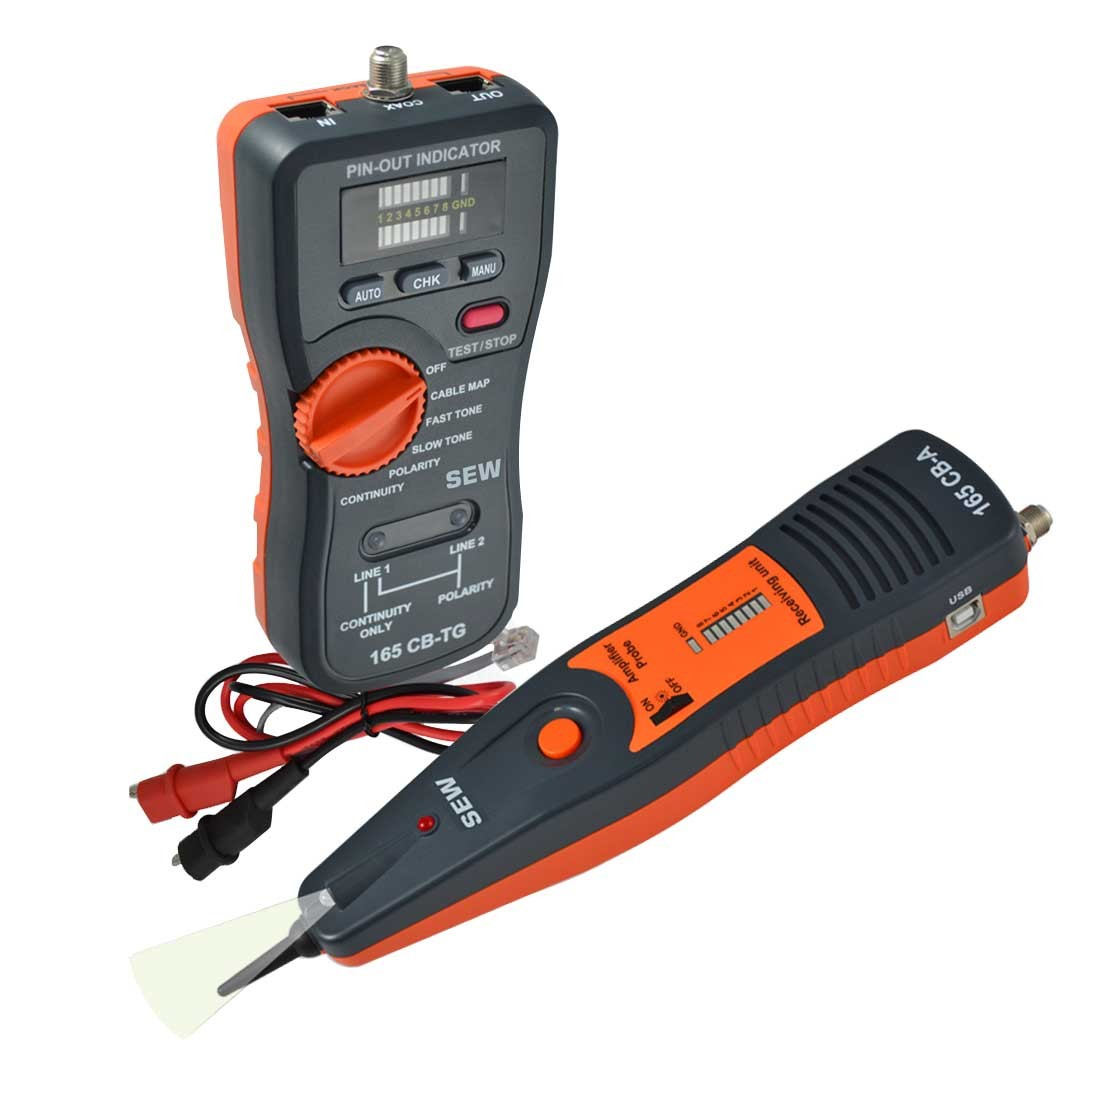 165 CB Multi-purpose Cable Tester